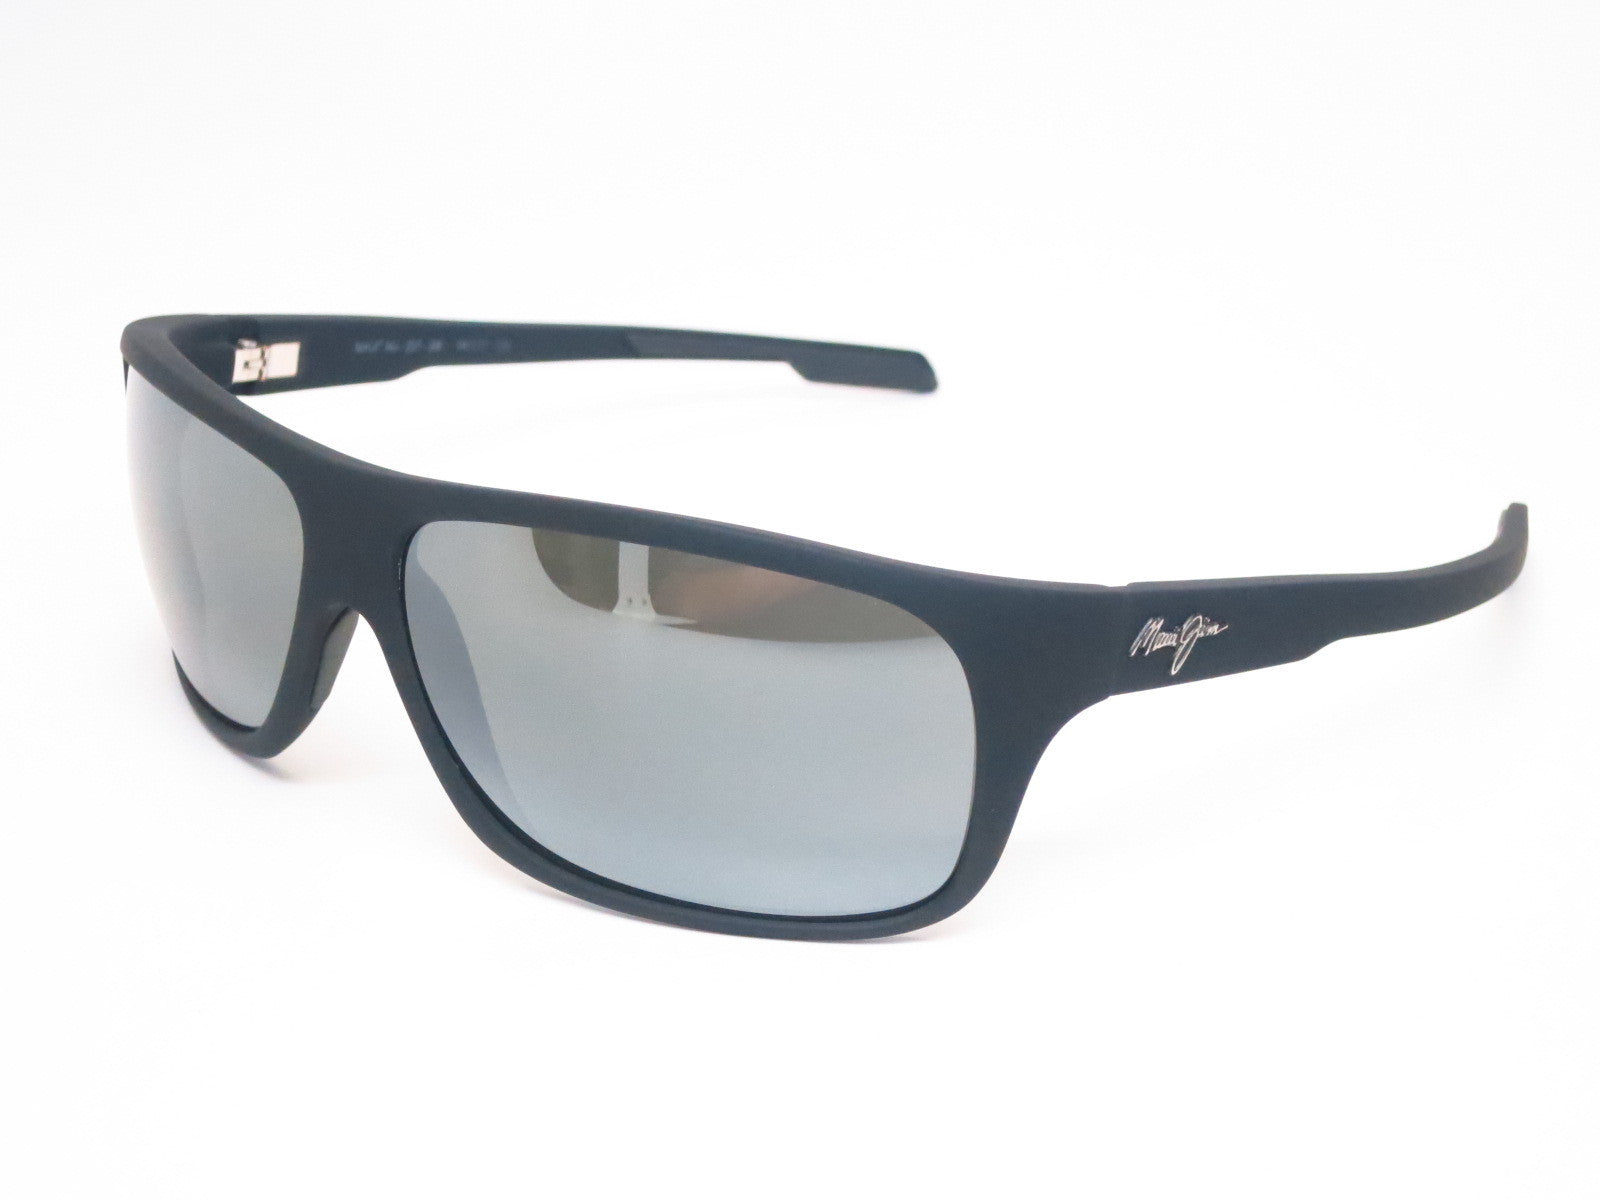 cc6b185a830 Maui Jim Island Time MJ 237-2M Black Matte Rubber Polarized Sunglasses -  Eye Heart ...